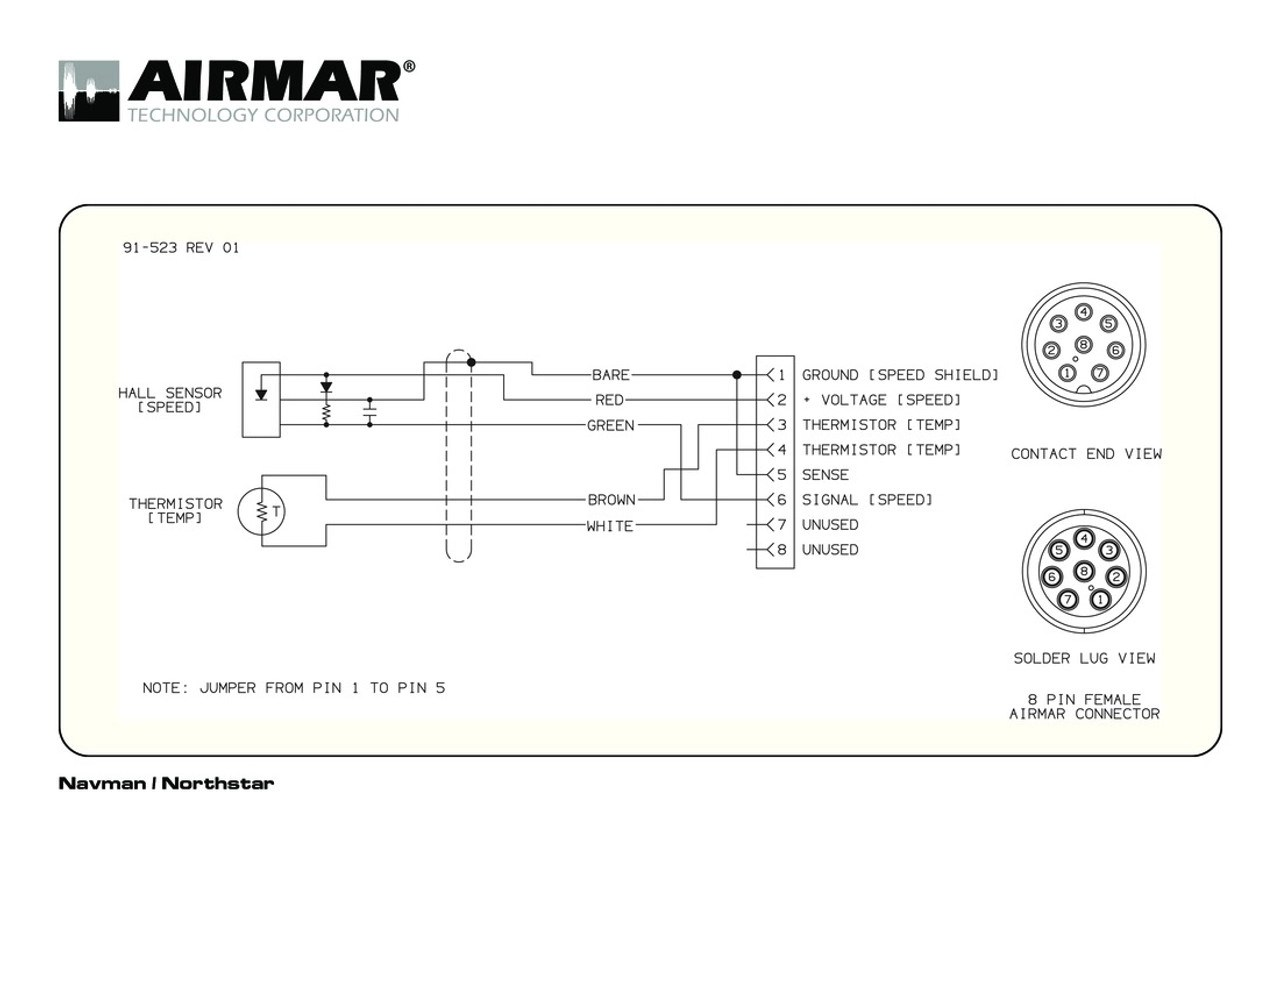 small resolution of northstar wiring diagram wiring diagram g8 baja wiring diagram airmar wiring diagram navman northstar blue